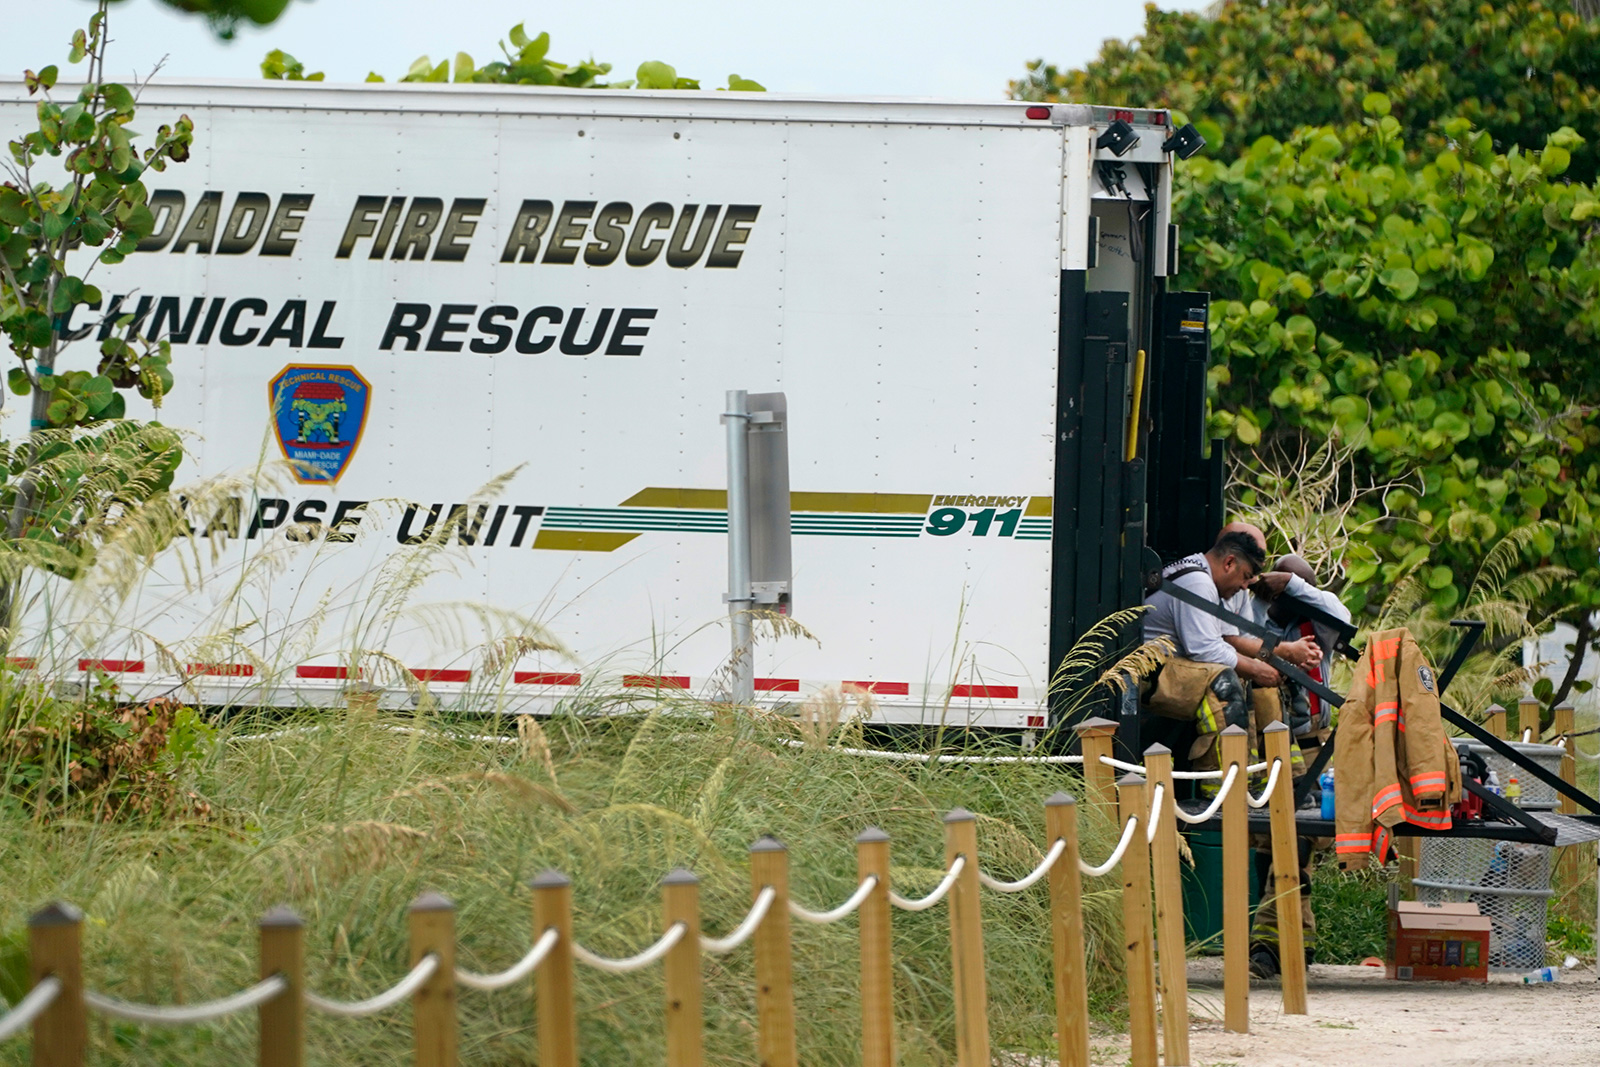 Firefighters wait in a truck near the site of a building that partially collapsed on Thursday.